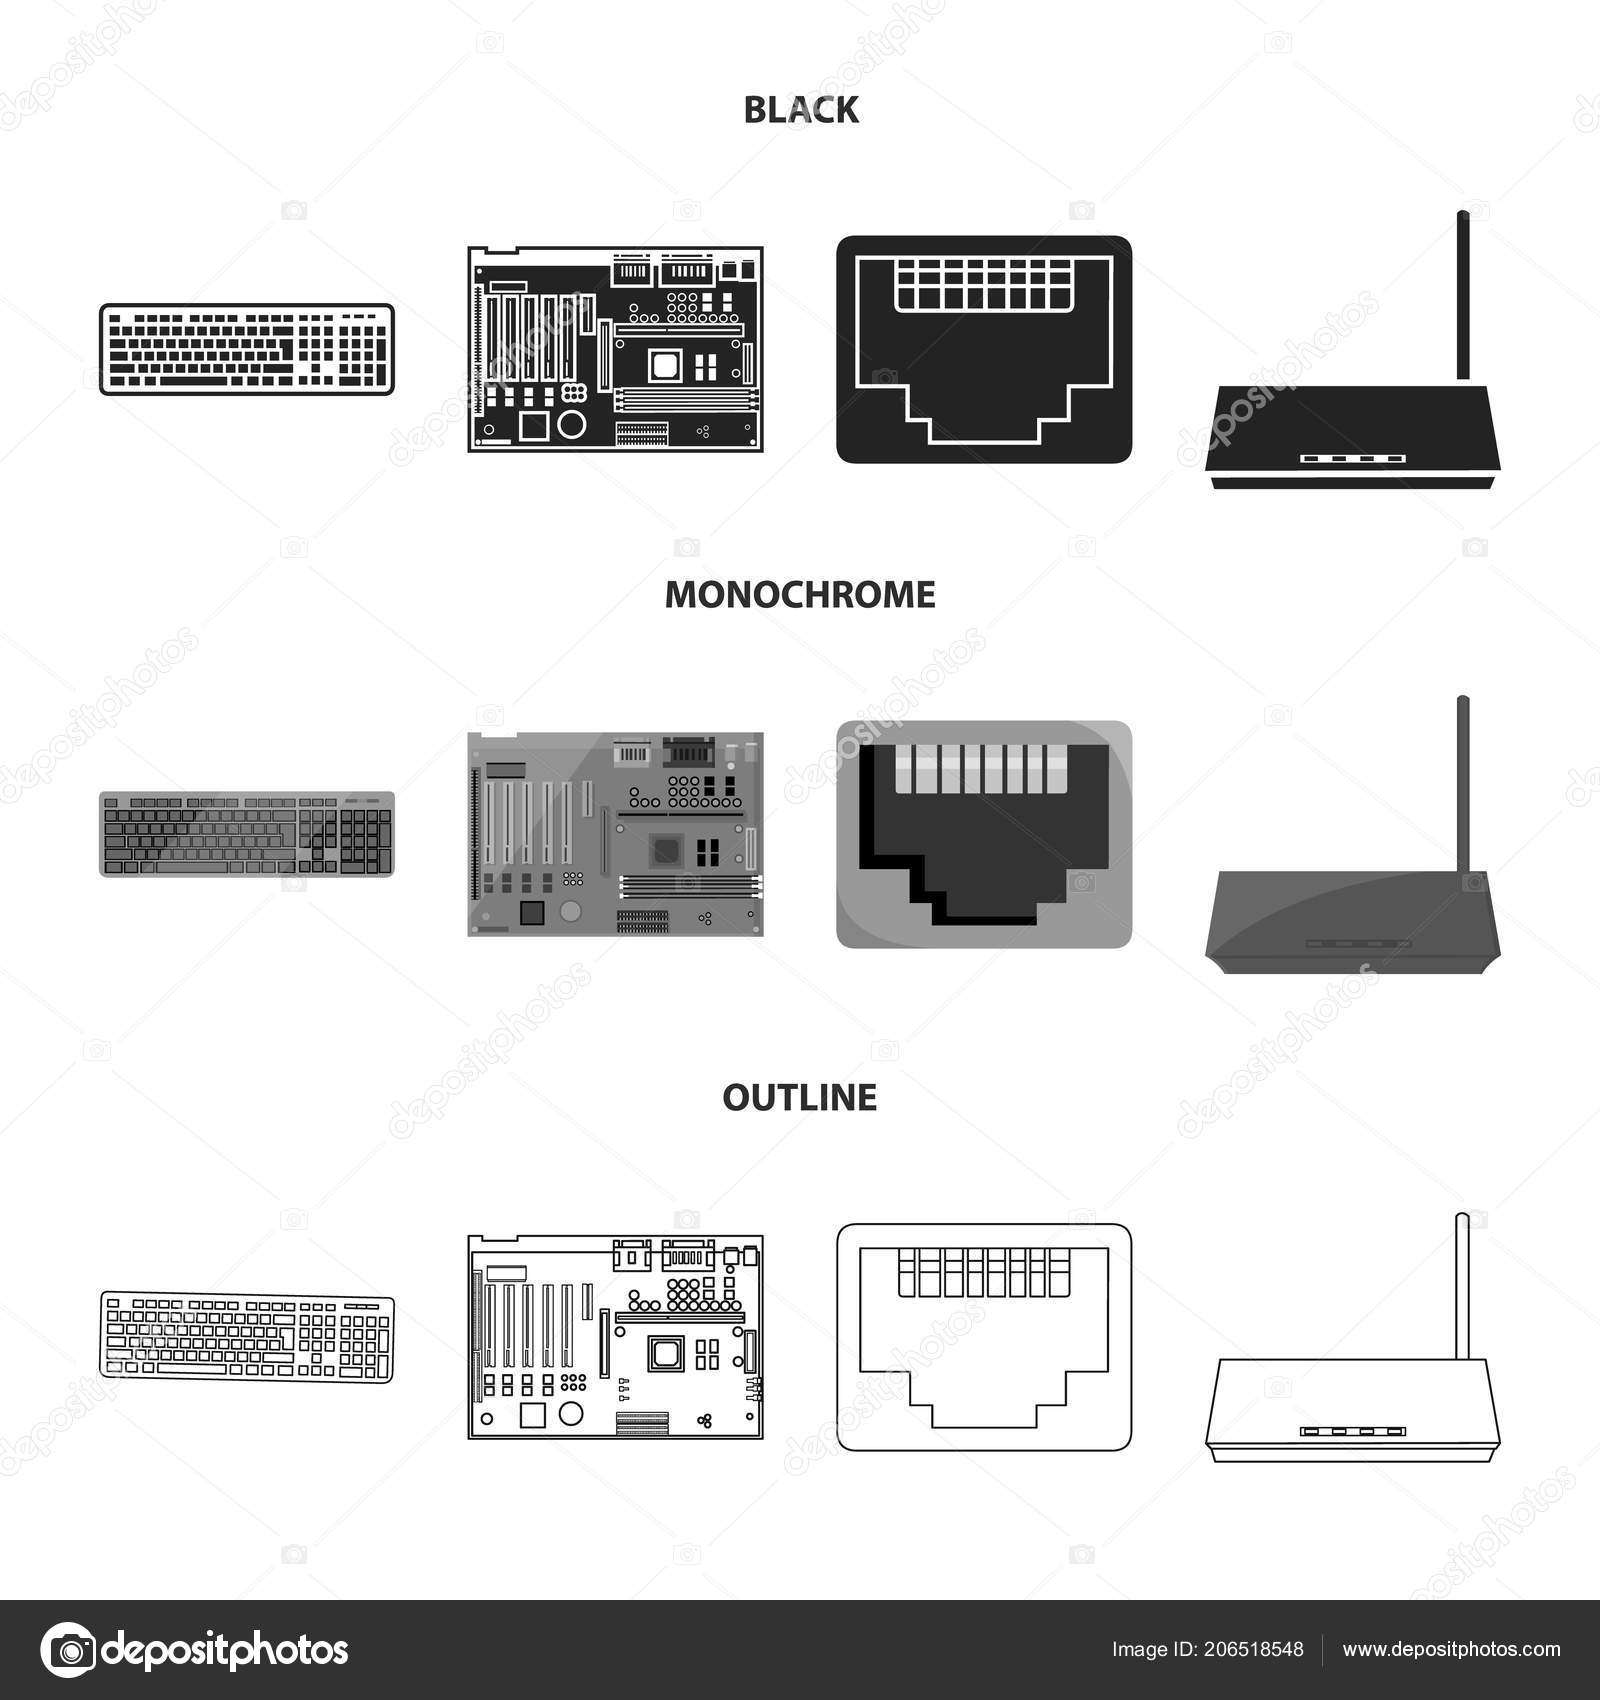 Computer motherboard wiring diagram symbols wiring diagram computer disk drive wiring diagram keyboard, router, motherboard and connector personal computer setkeyboard, router, motherboard and connector